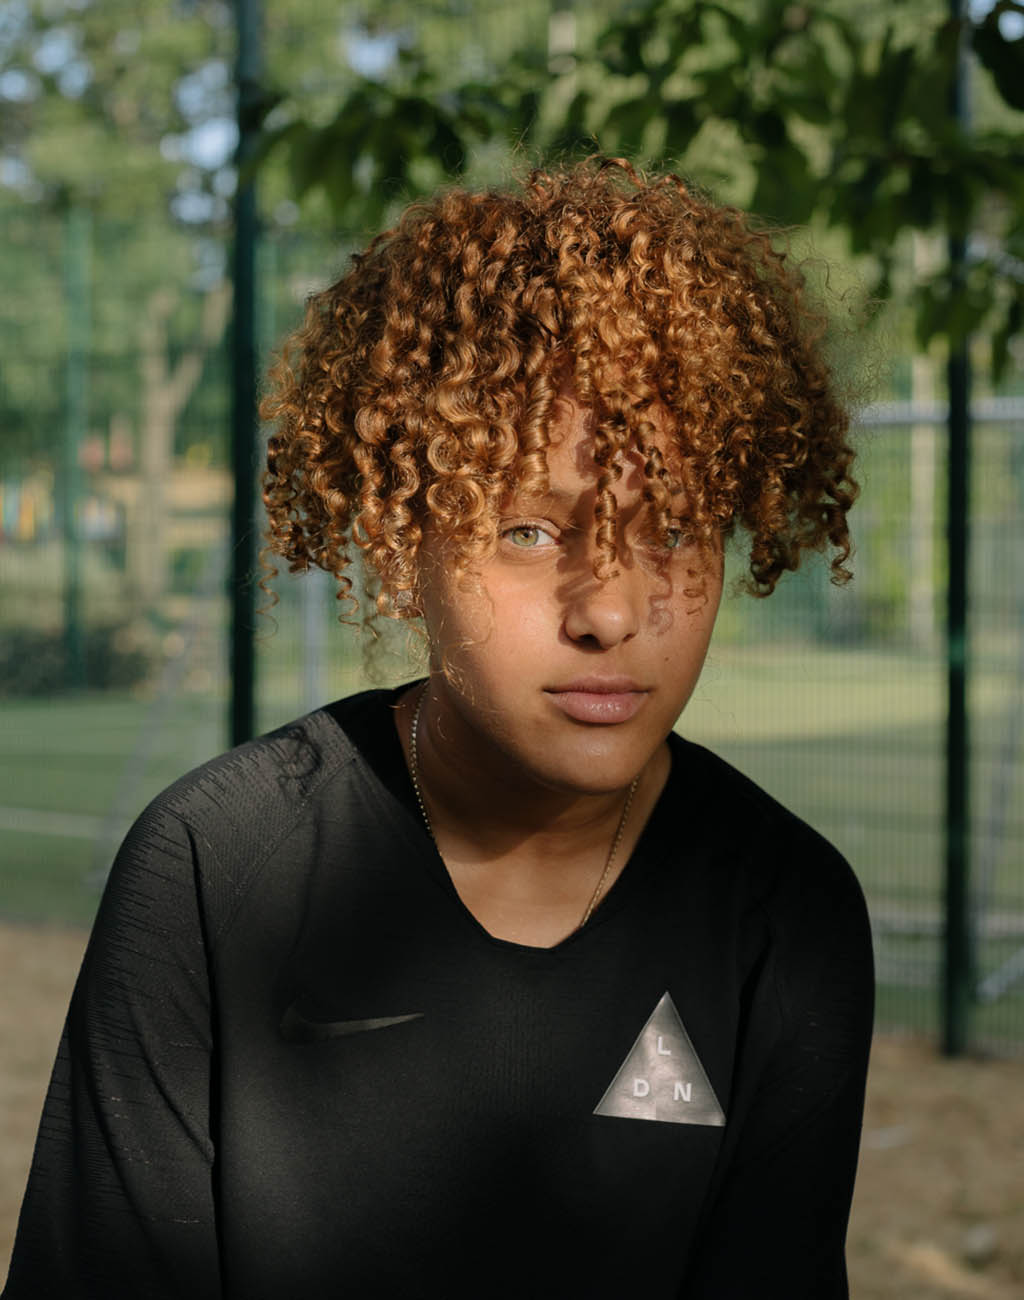 Borough Clashes - South nike phantom portrait_0026_NikePhantomBrixton2018_Gili_6784.jpg